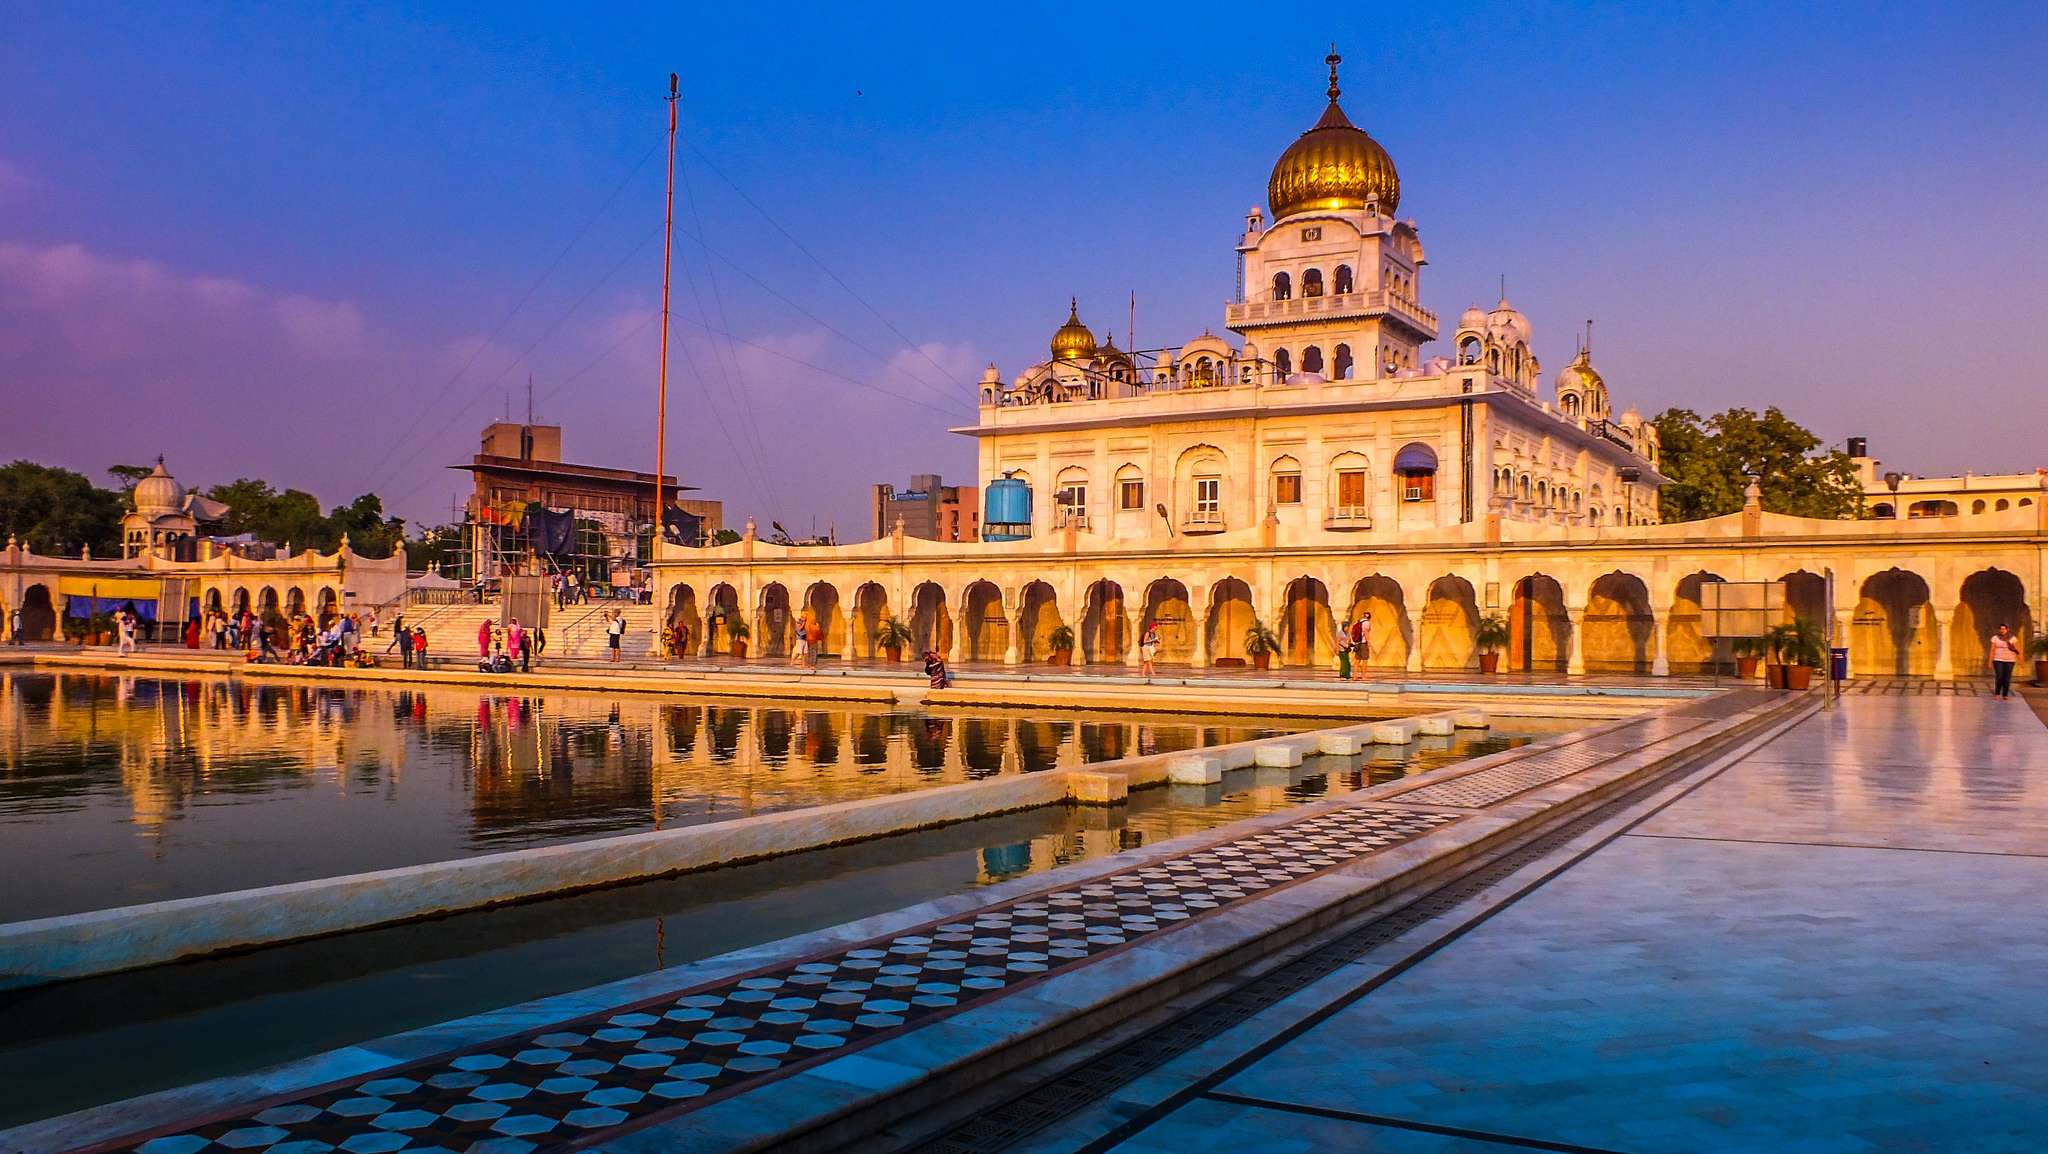 The Top 10 Things To Do In Connaught Place, New Delhi